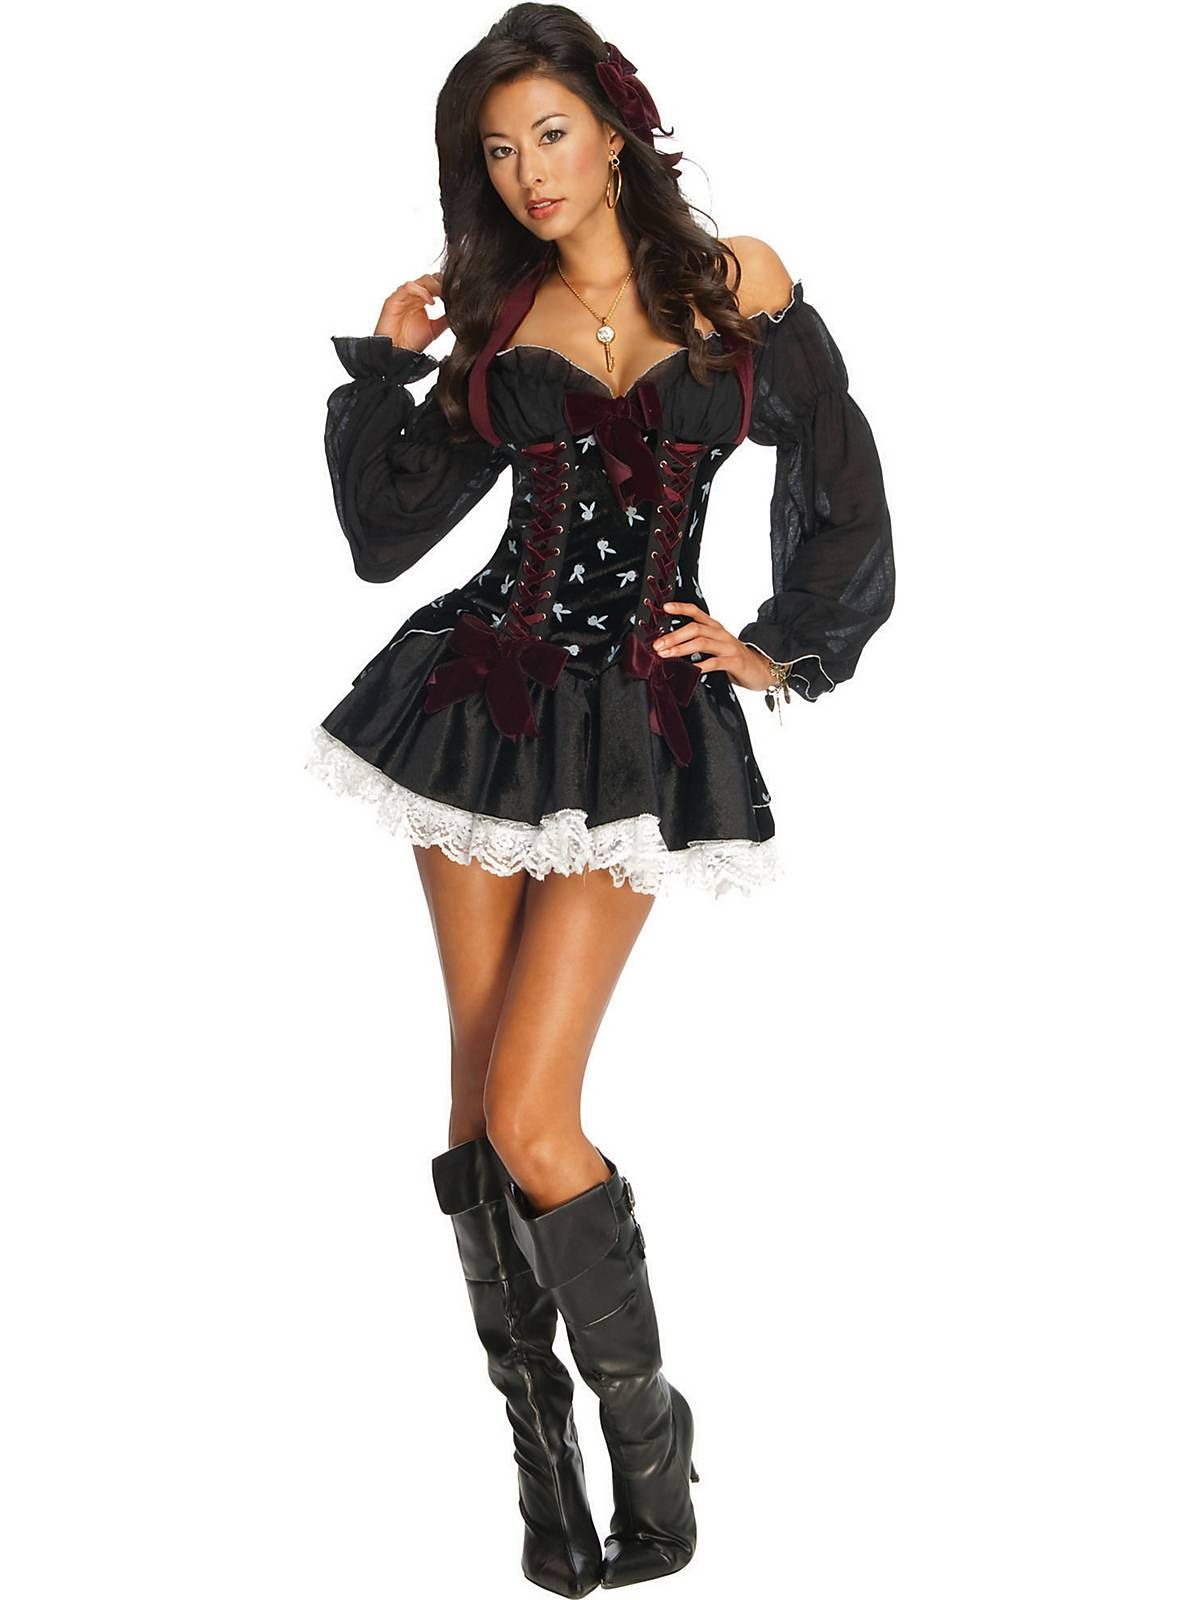 Playboy Sexy Swashbuckler Pirate Adult Costume | Wholesale Pirate Costumes for Adults  sc 1 st  Pinterest & Womens Sexy Swashbuckler Pirate Costume | Pinterest | Costumes ...